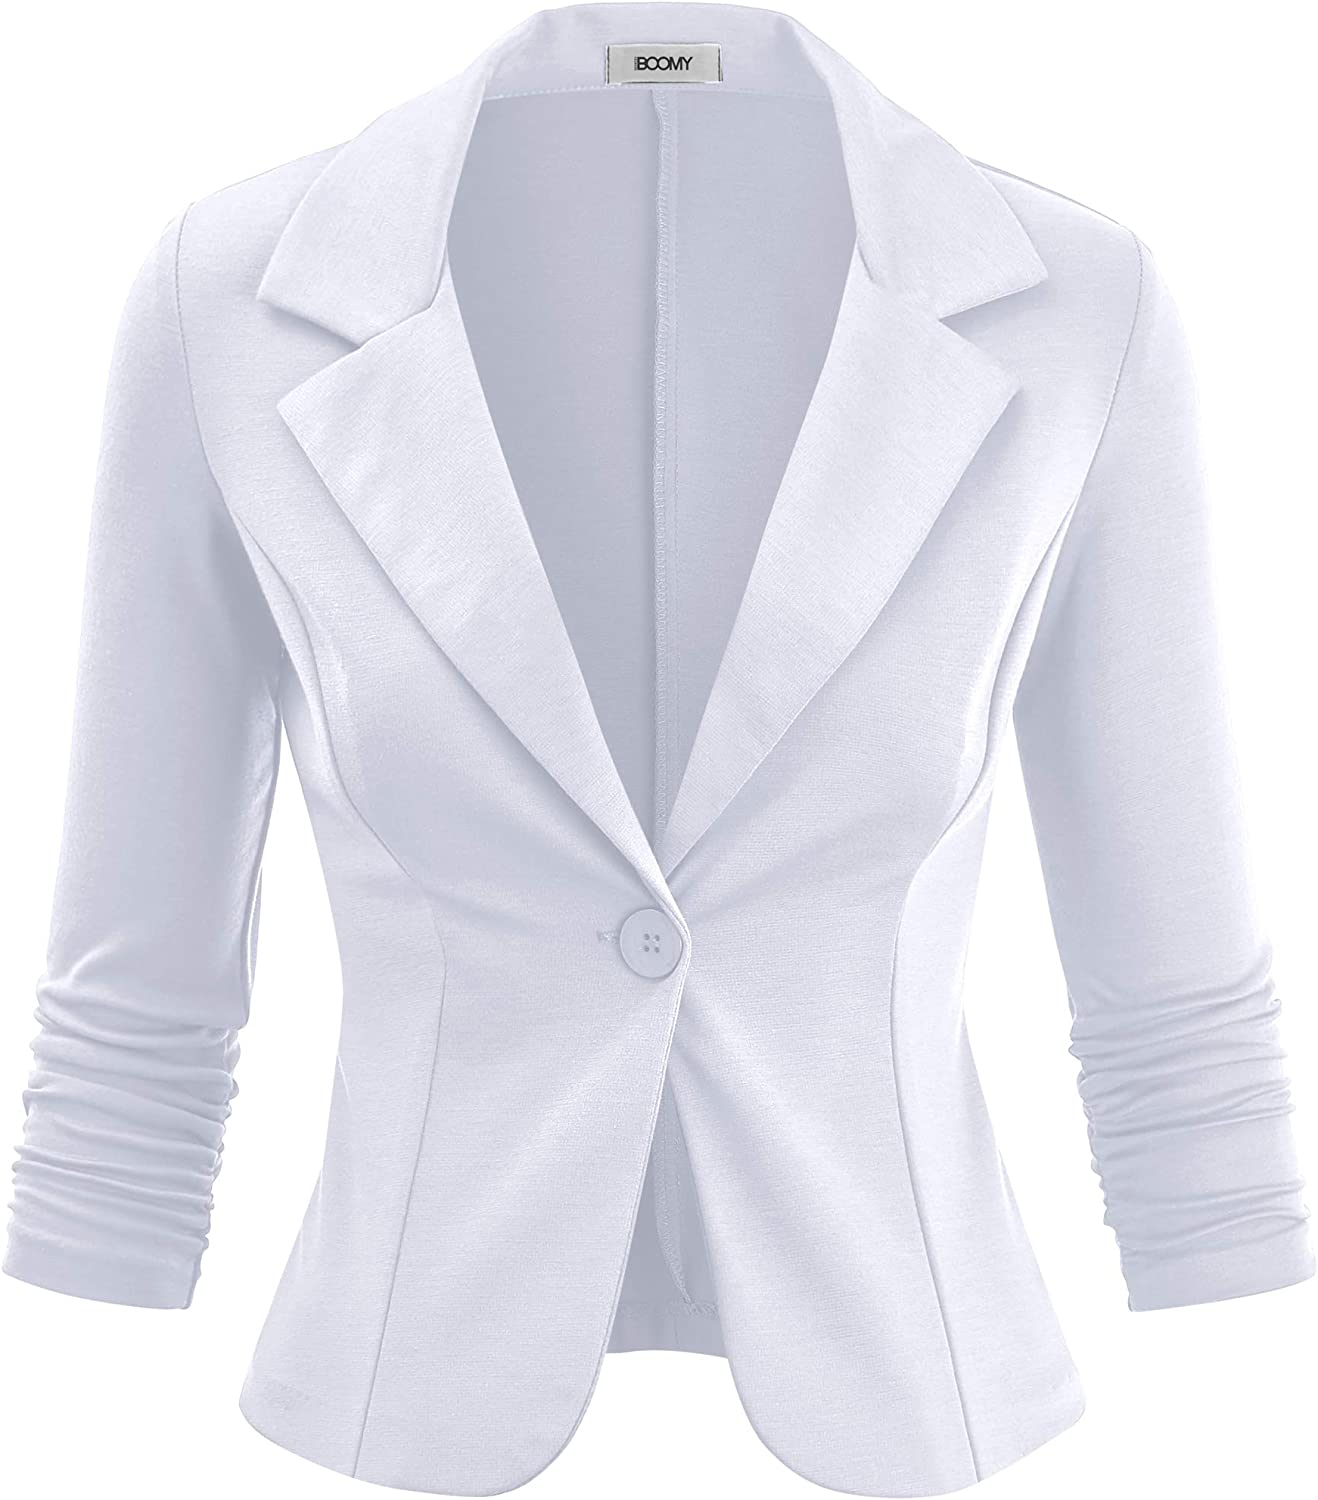 FASHION BOOMY Women's Casual Work Office Blazer - 3/4 Ruched Sleeve Knit Jacket - Regular and Plus Sizes